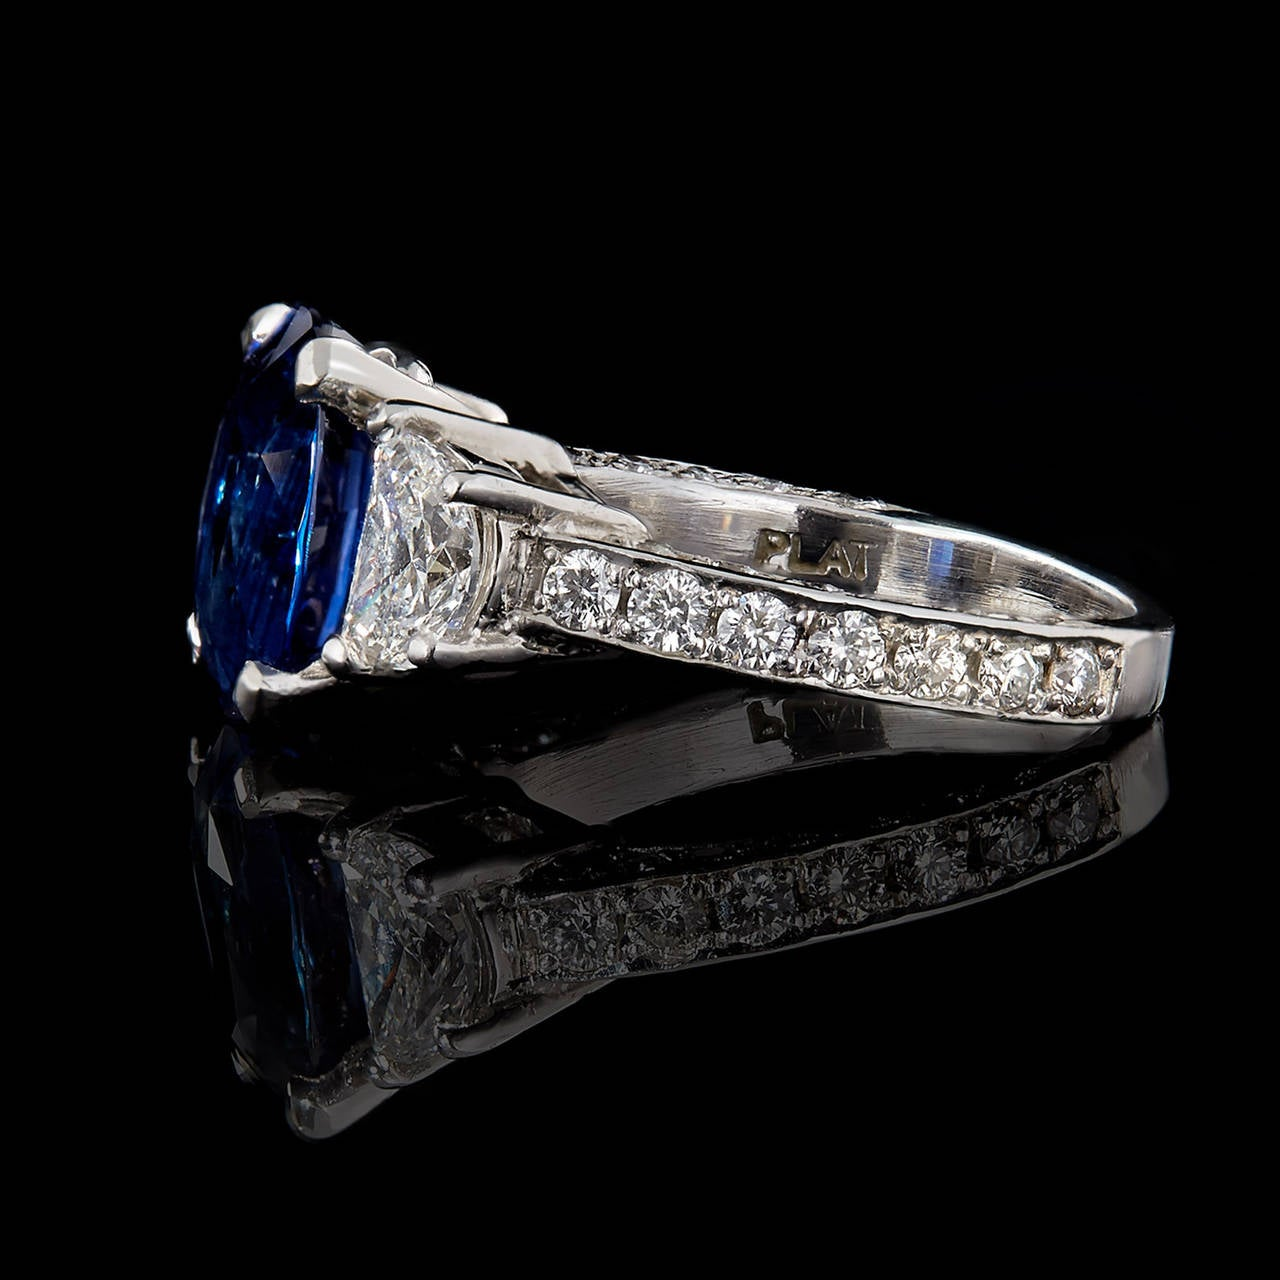 3-Stone No Heat Vivid Blue Sapphire from Madagascar & Diamond Ring set in Platinum. The center stone is a 4.07 carat oval mixed cut blue sapphire flanked with half-moon shape brilliant cut diamonds on each side totaling 1.60 carats and 38 Round